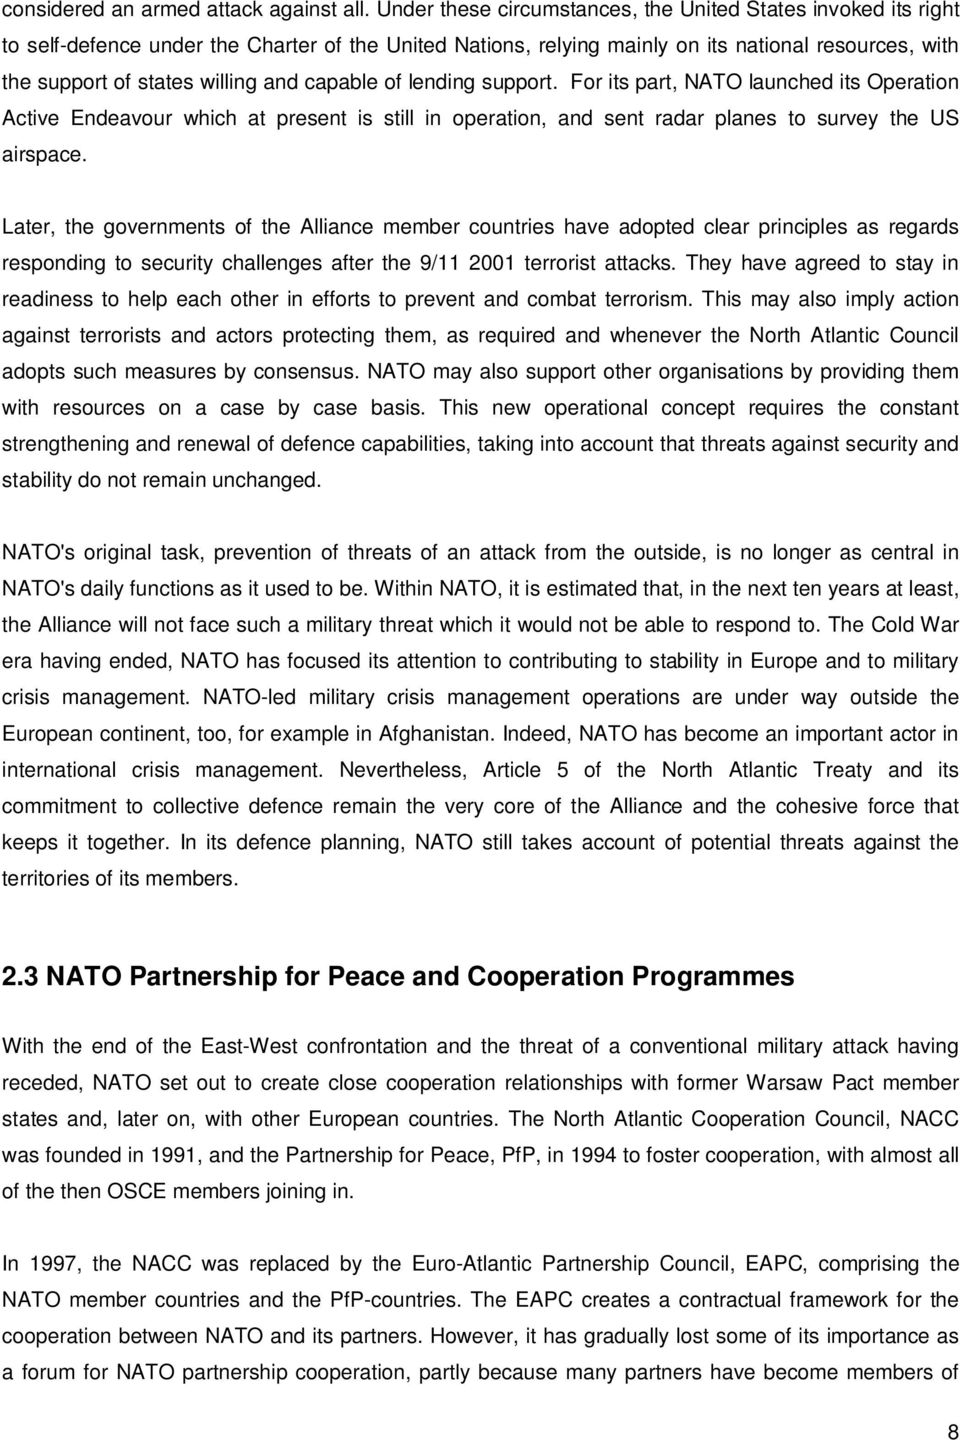 and capable of lending support. For its part, NATO launched its Operation Active Endeavour which at present is still in operation, and sent radar planes to survey the US airspace.